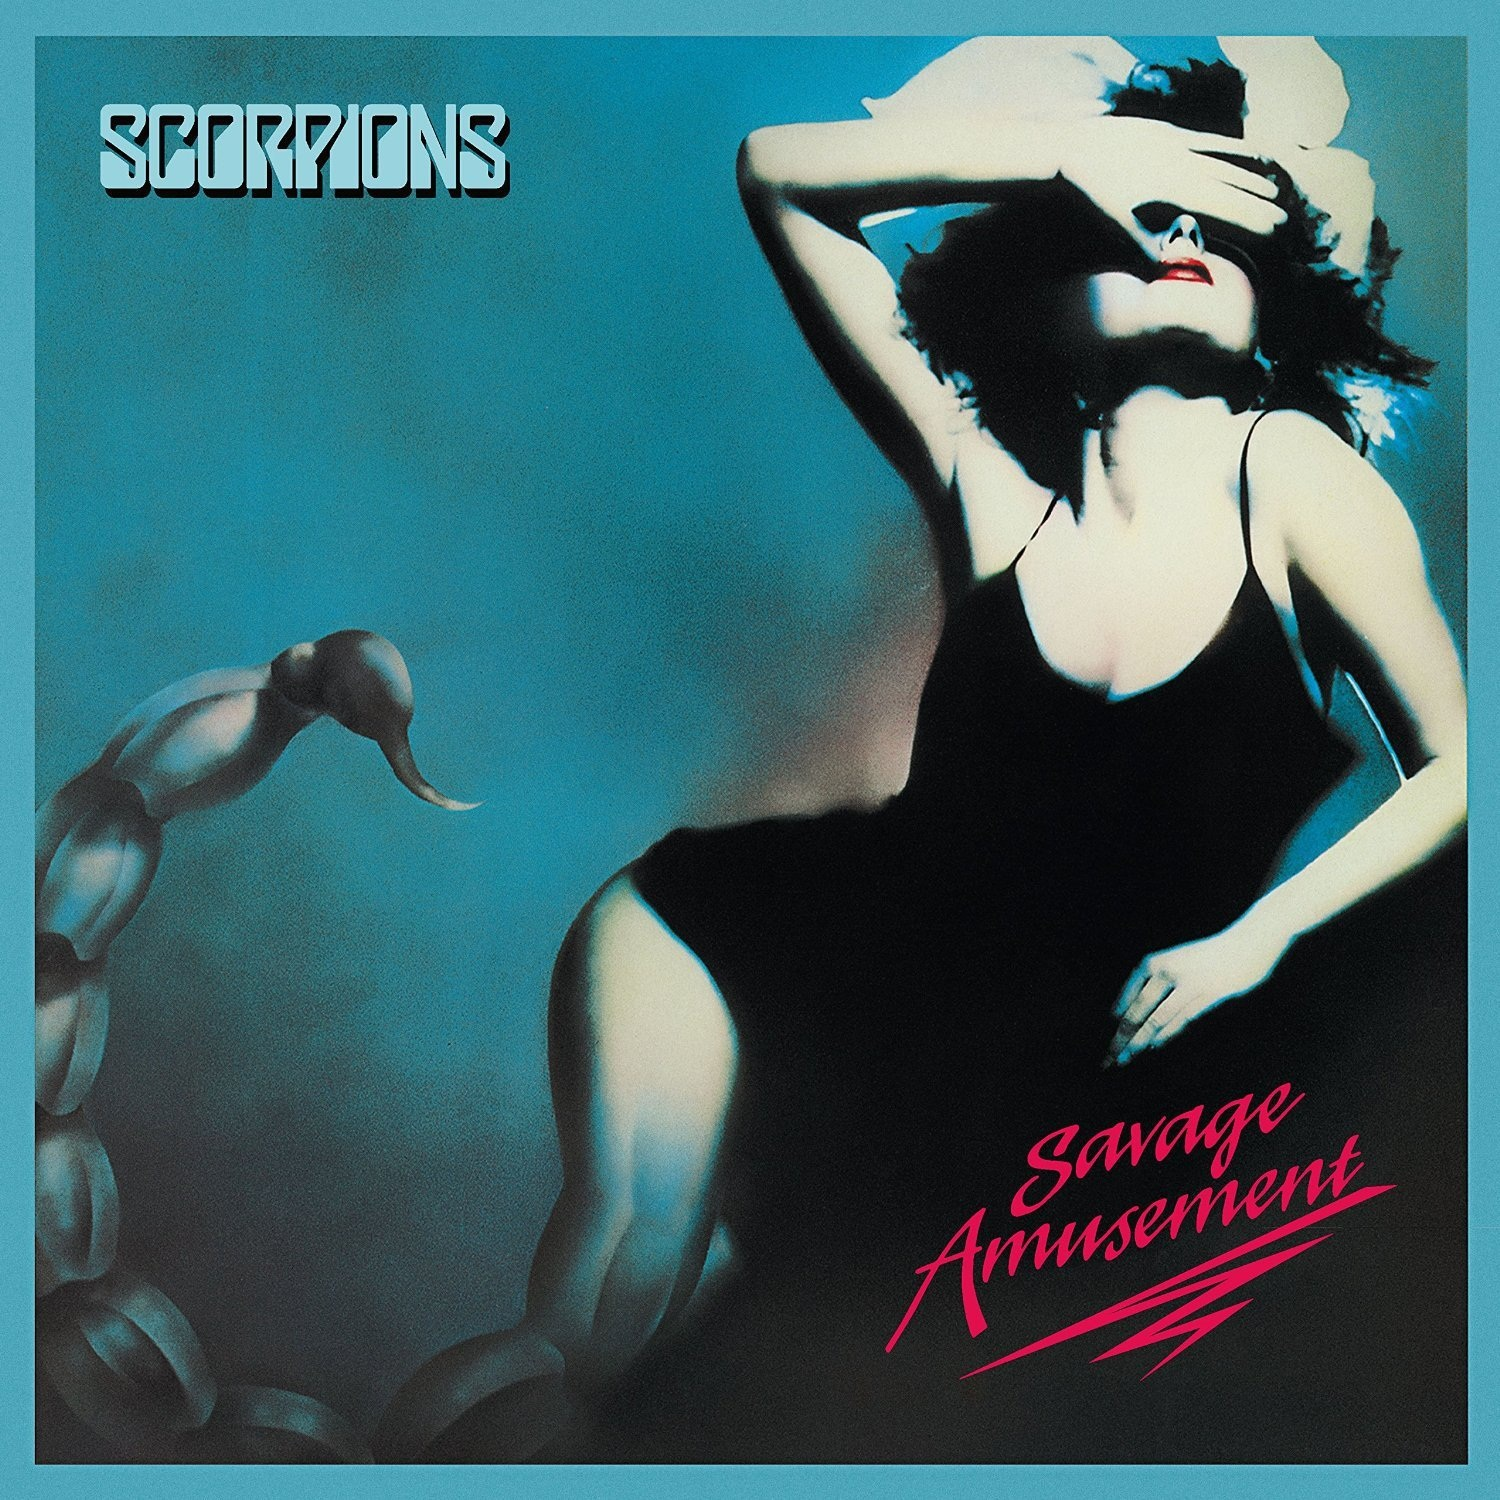 Scorpions: Savage Amusement (CD + DVD) альбом для cd и dvd в интернет магазине в спб